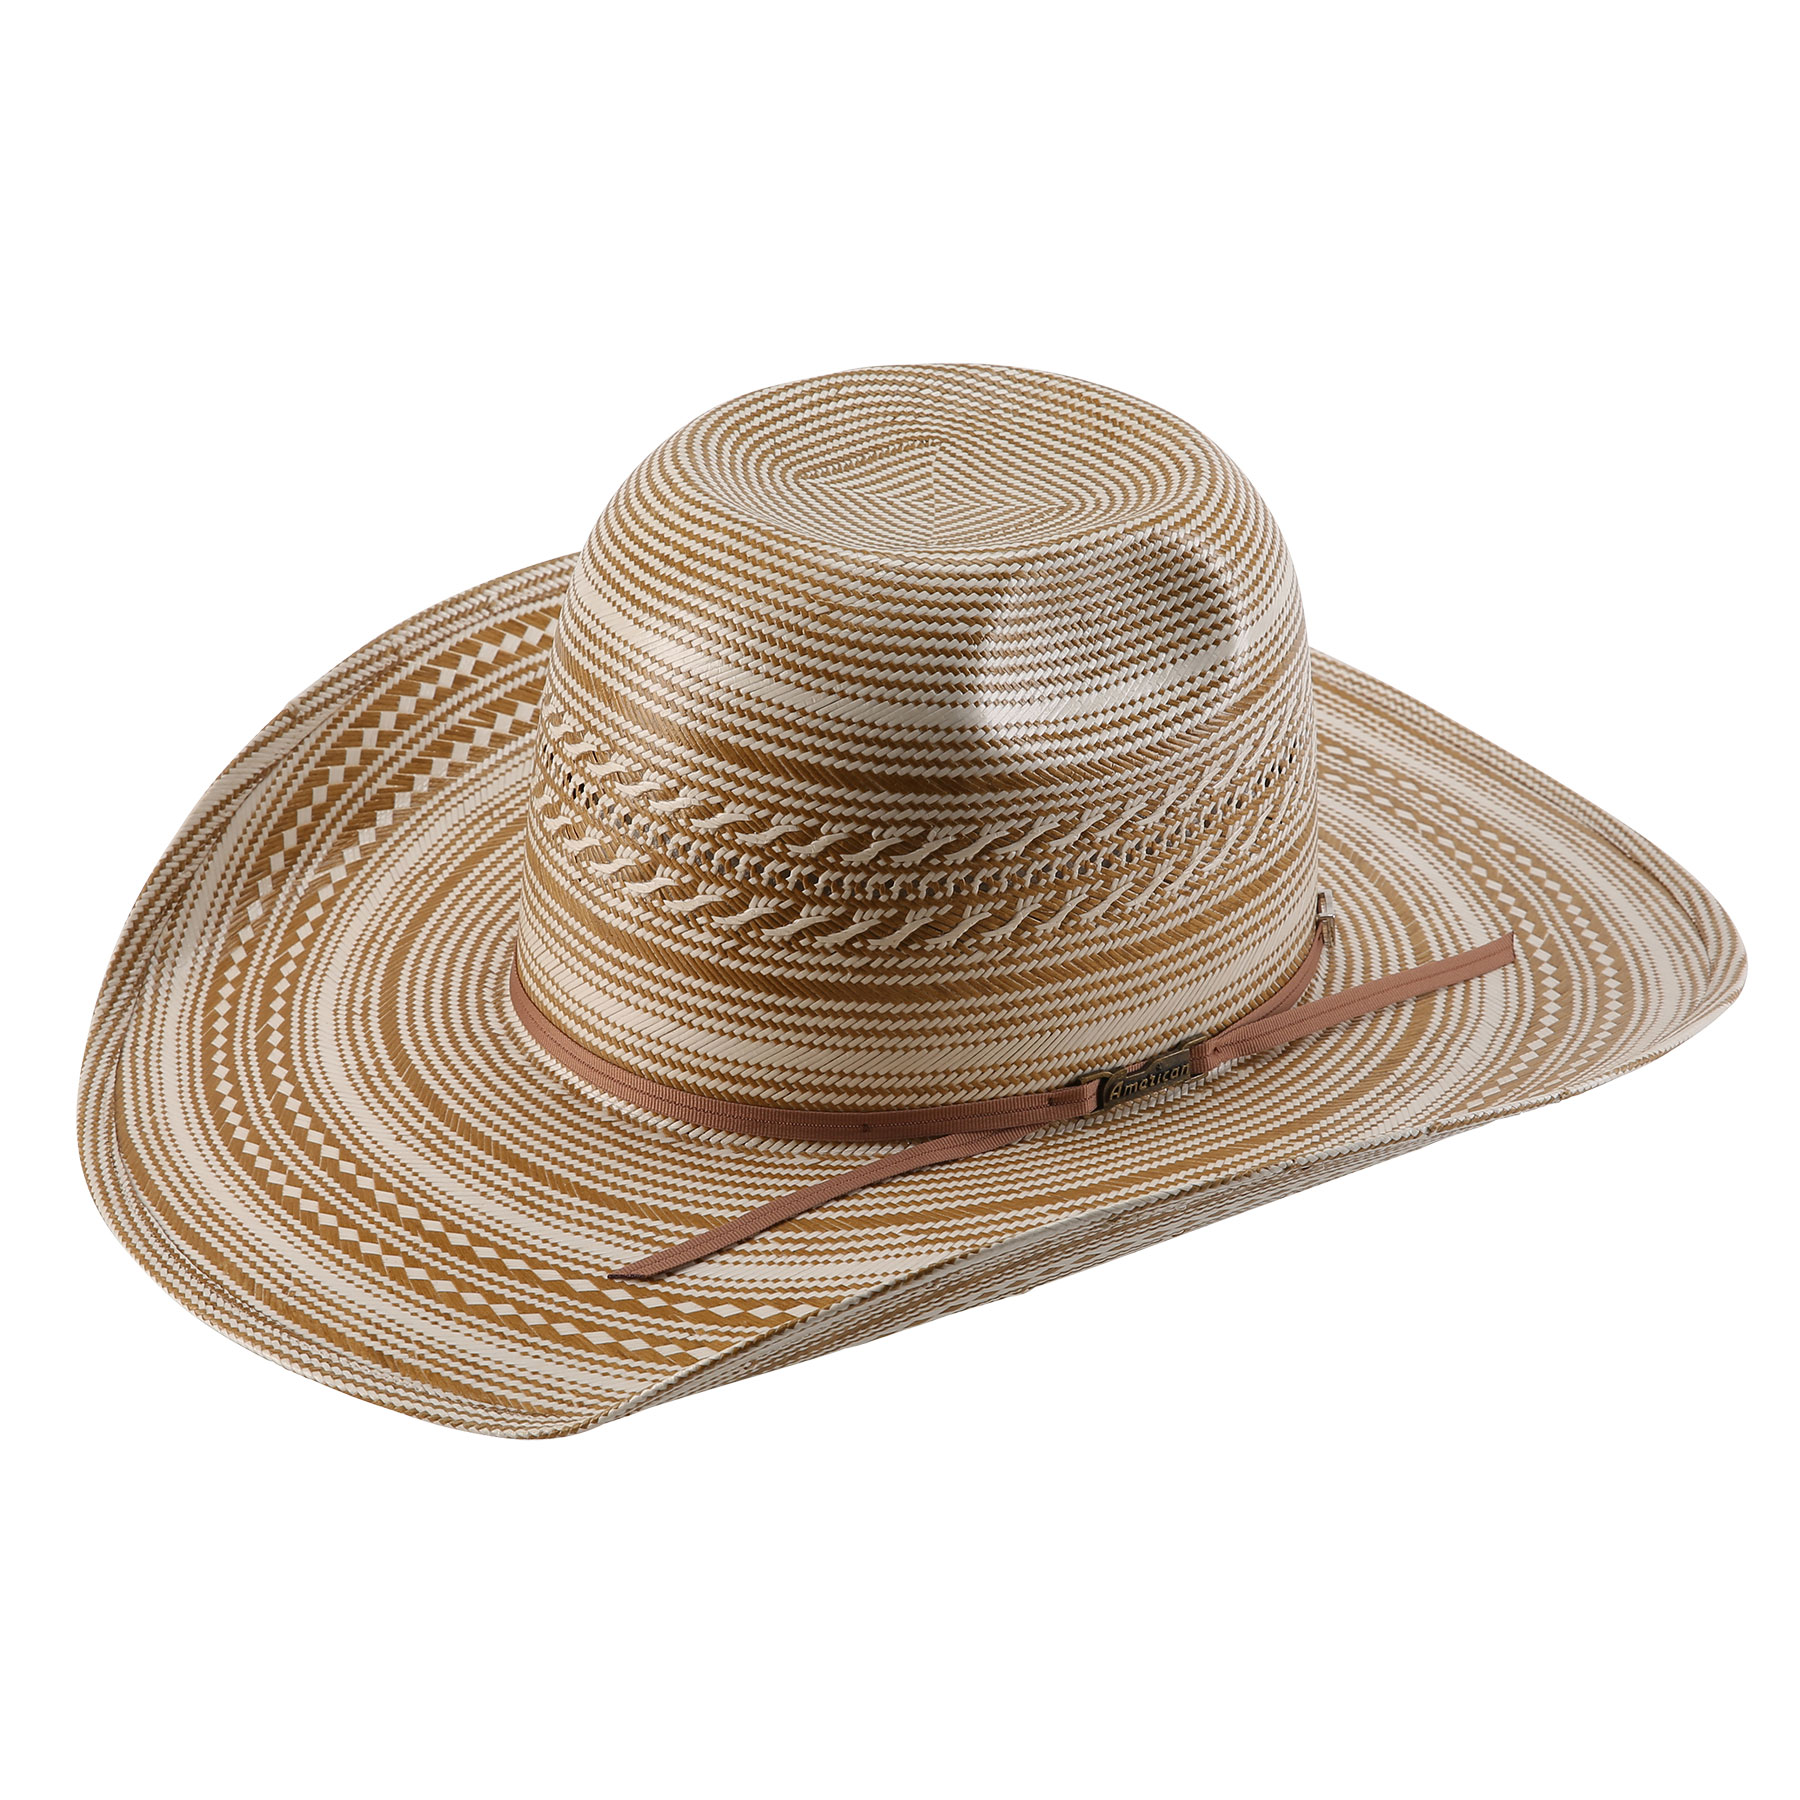 5dcb07af7 American Hat Co 20★ 1080 Two Tone Vented Straw Hat - Chocolate/Ivory